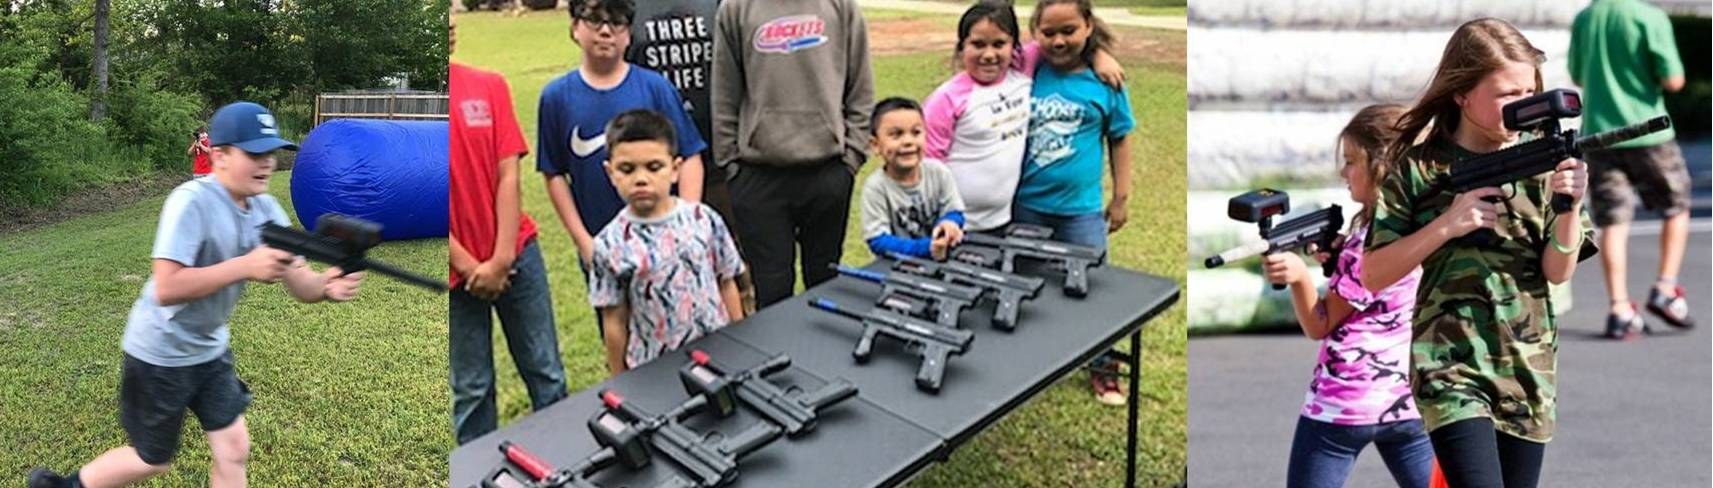 Laser tag party in eastern Mississippi and western Alabama